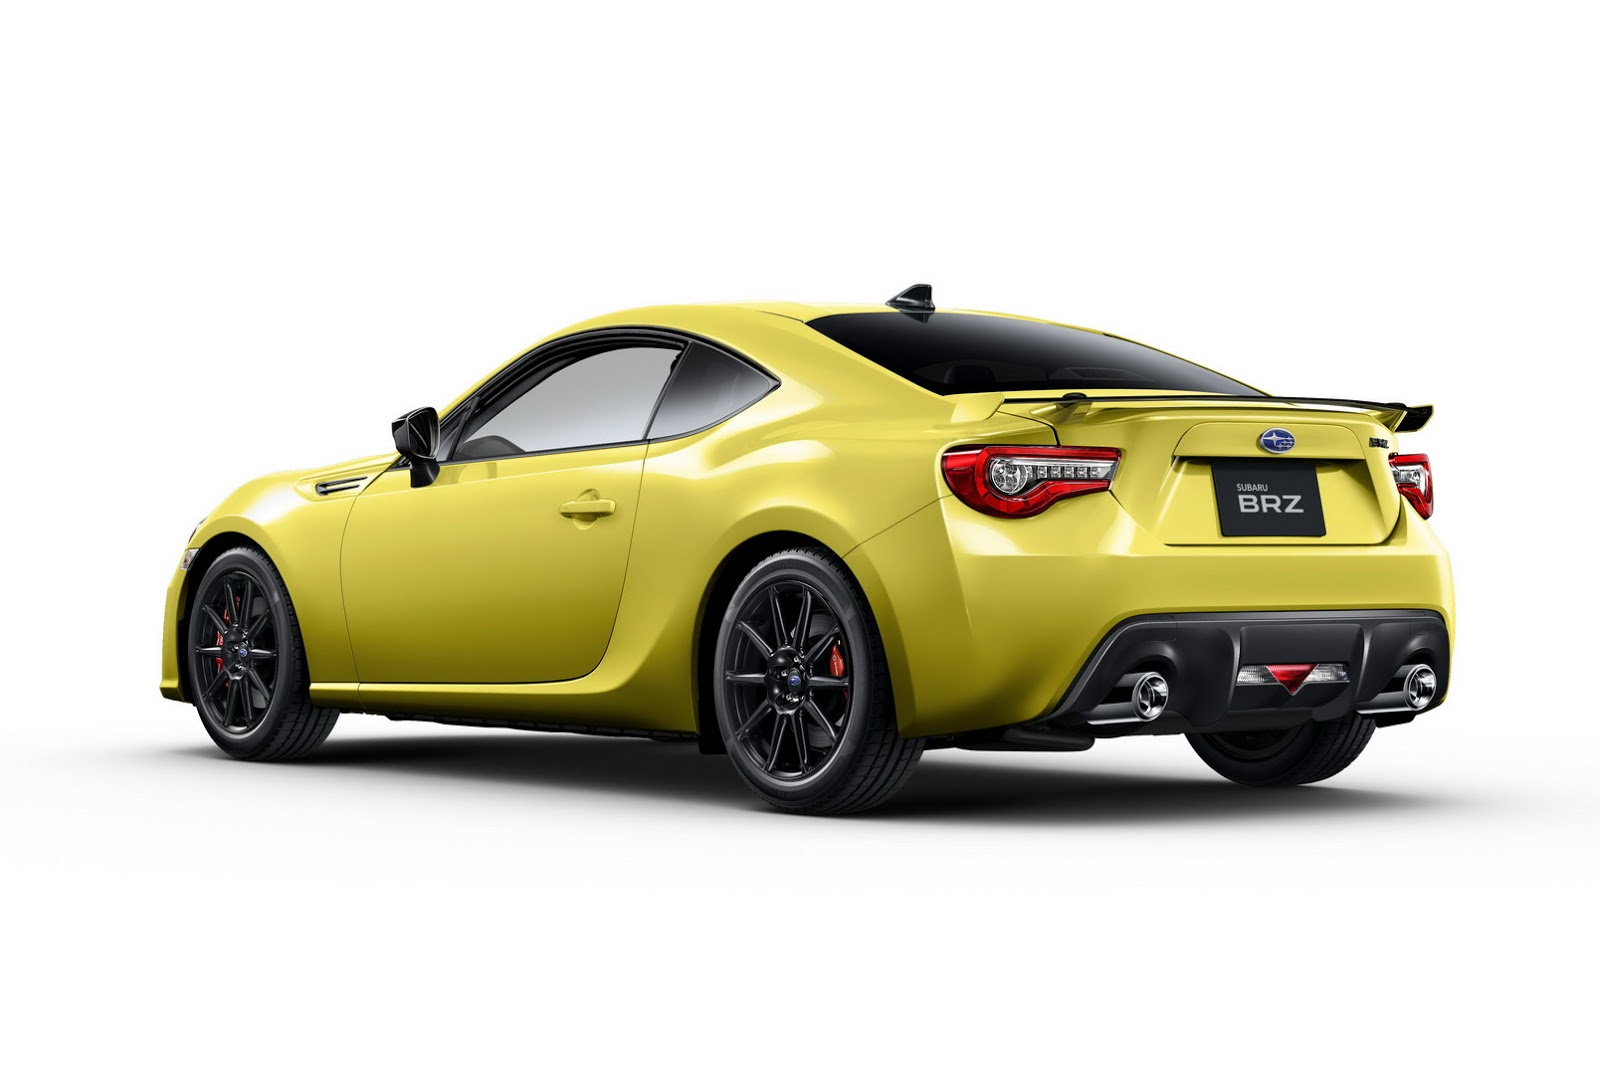 japan gets 2017 subaru brz gt range topper. Black Bedroom Furniture Sets. Home Design Ideas